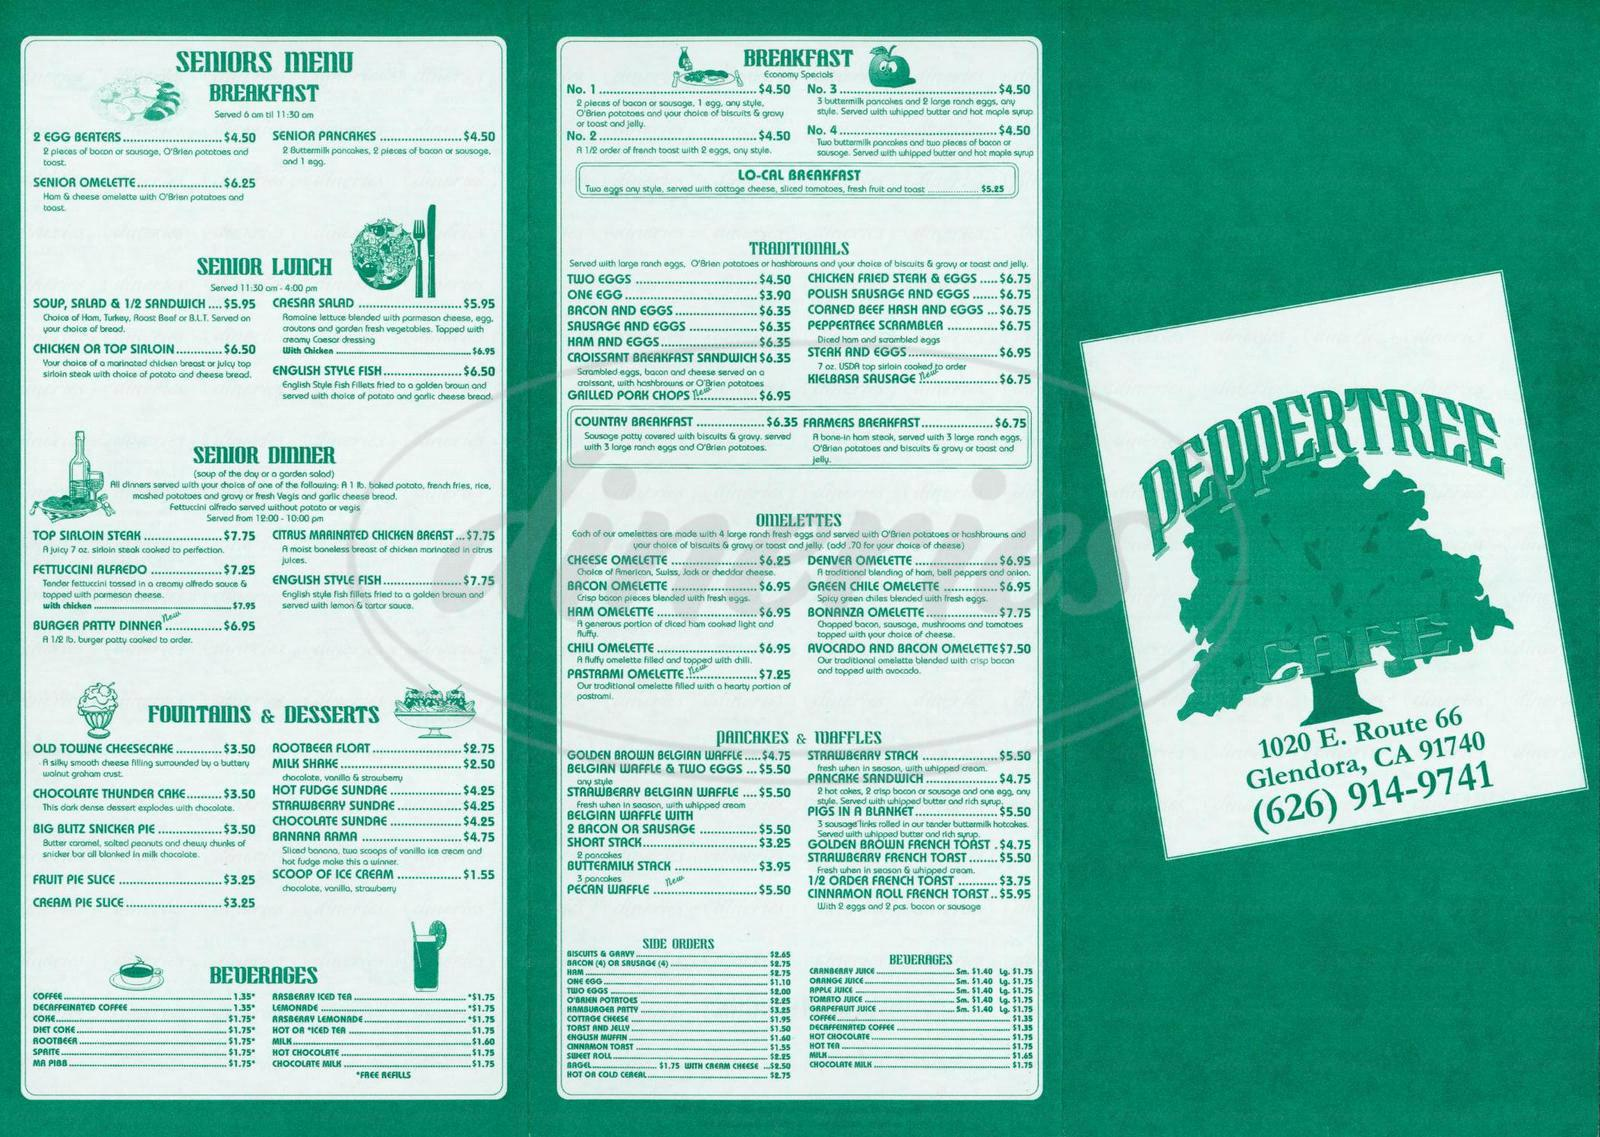 menu for Peppertree Cafe